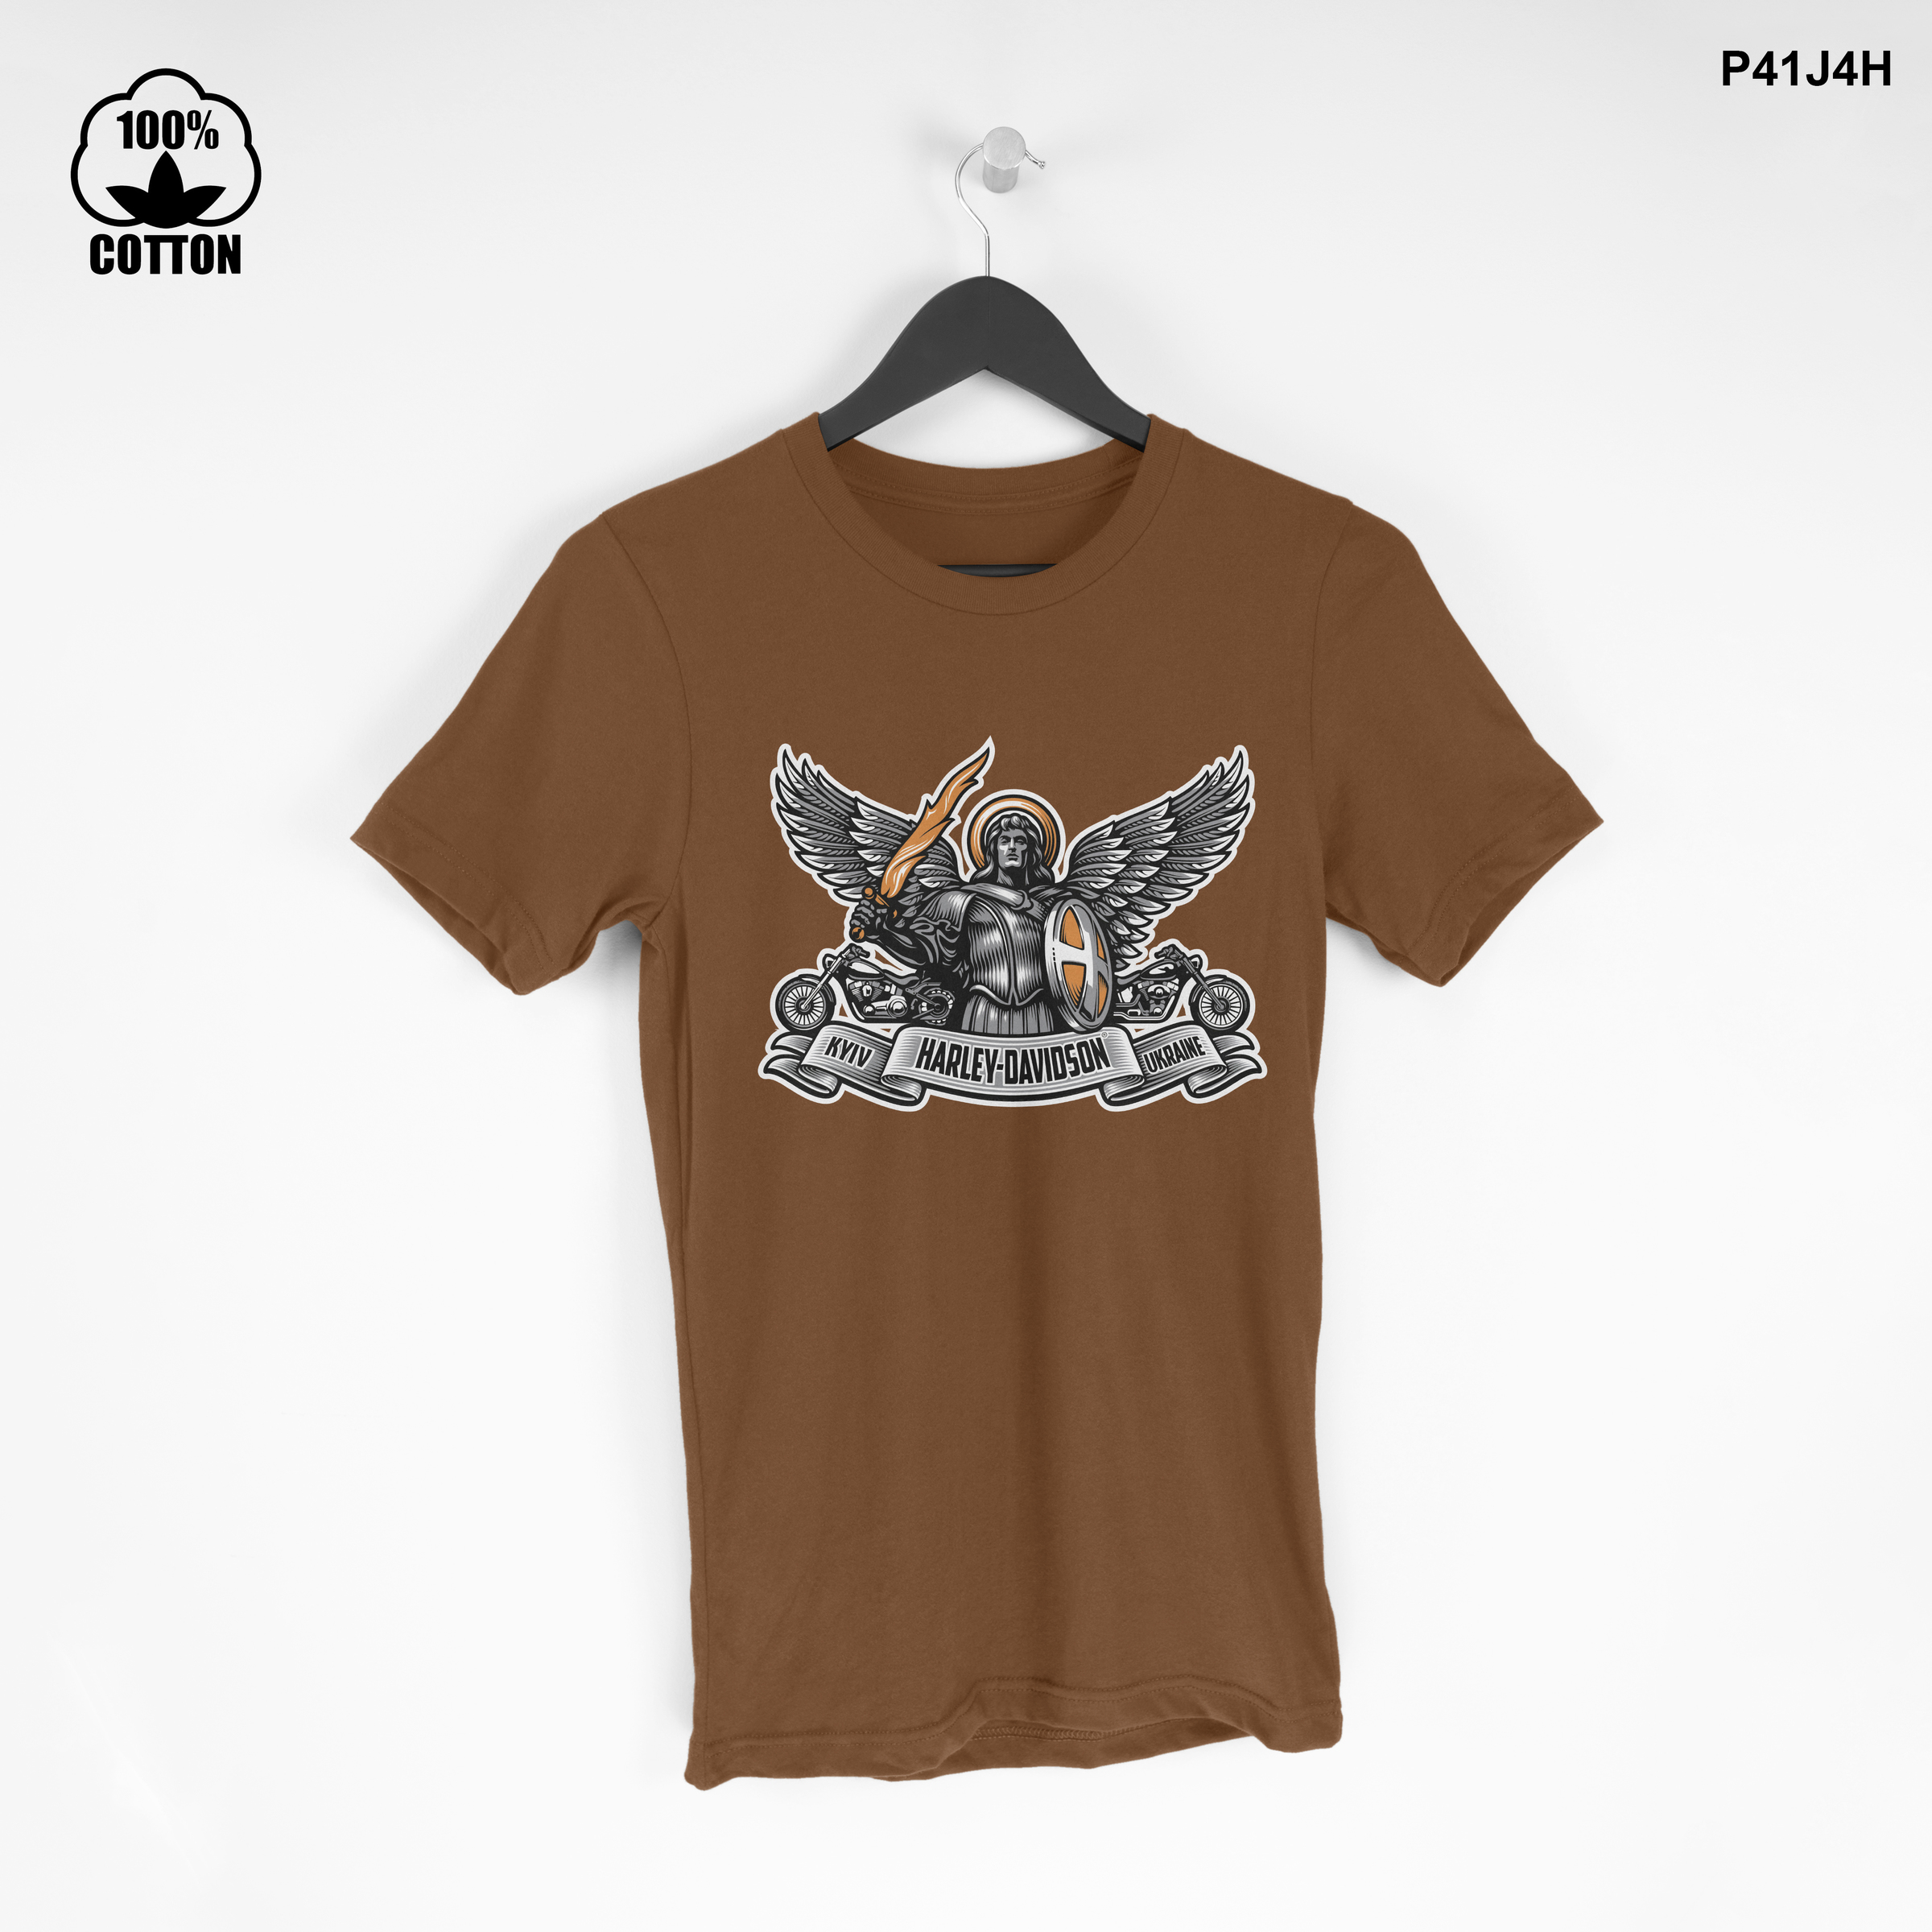 LIMITED EDITION!! kiev-logo-harley-davidson-dealer-motorcycle T Shirt Tee Saddle Brown.jpg